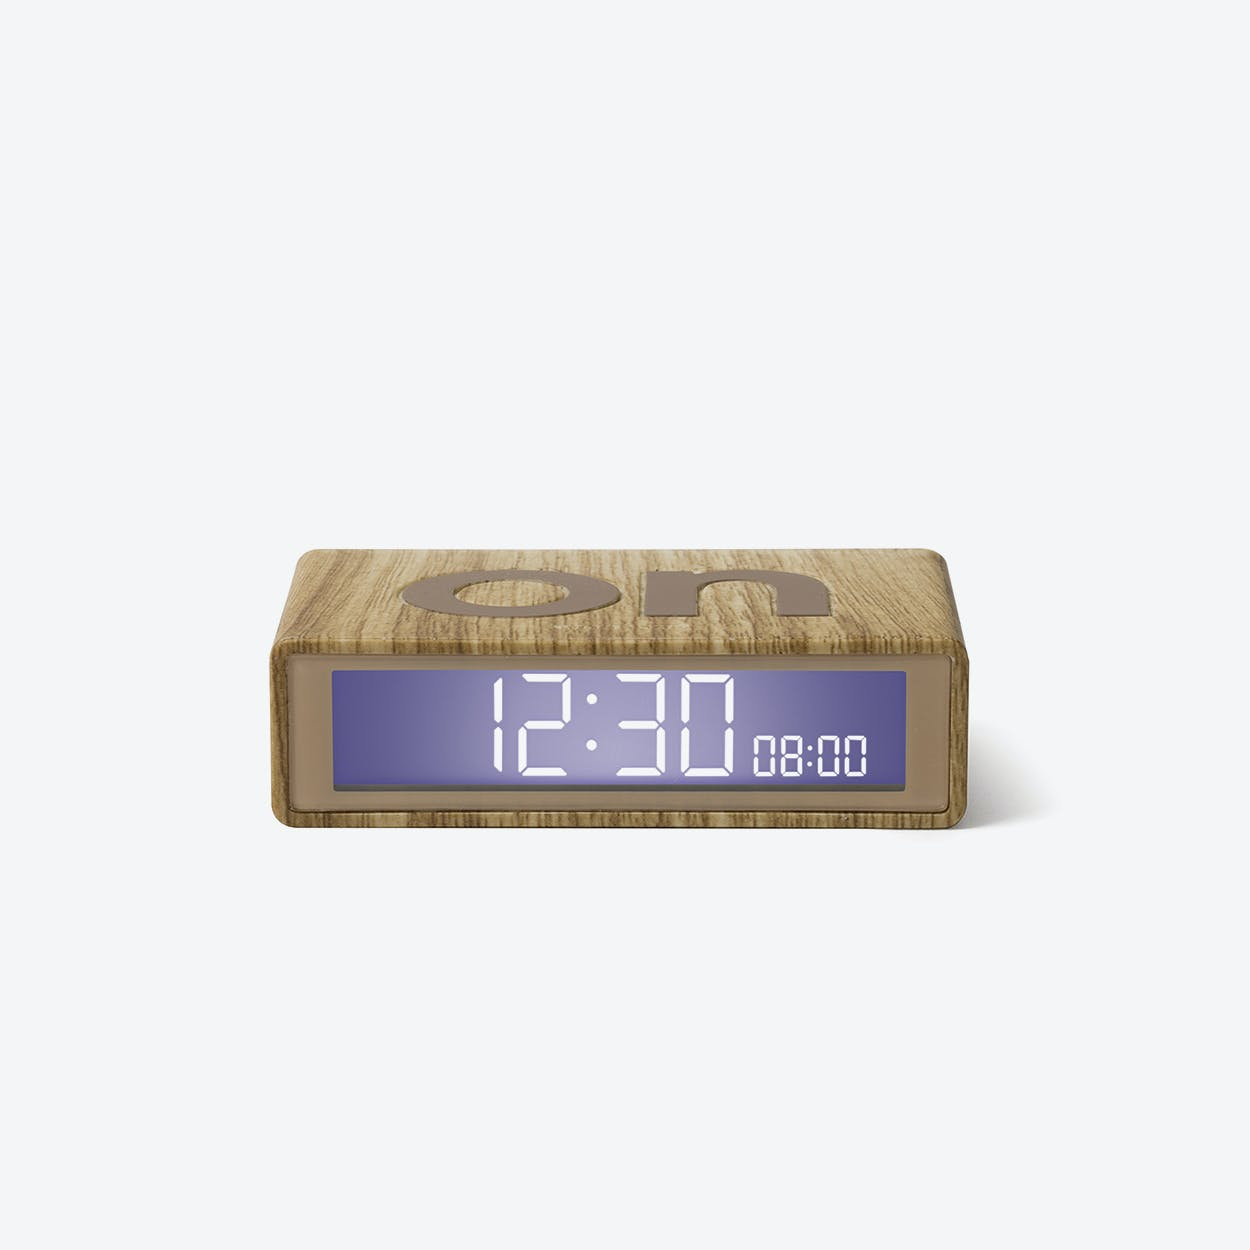 LCD Alarm Clock - Flip Travel Clock Light Wood